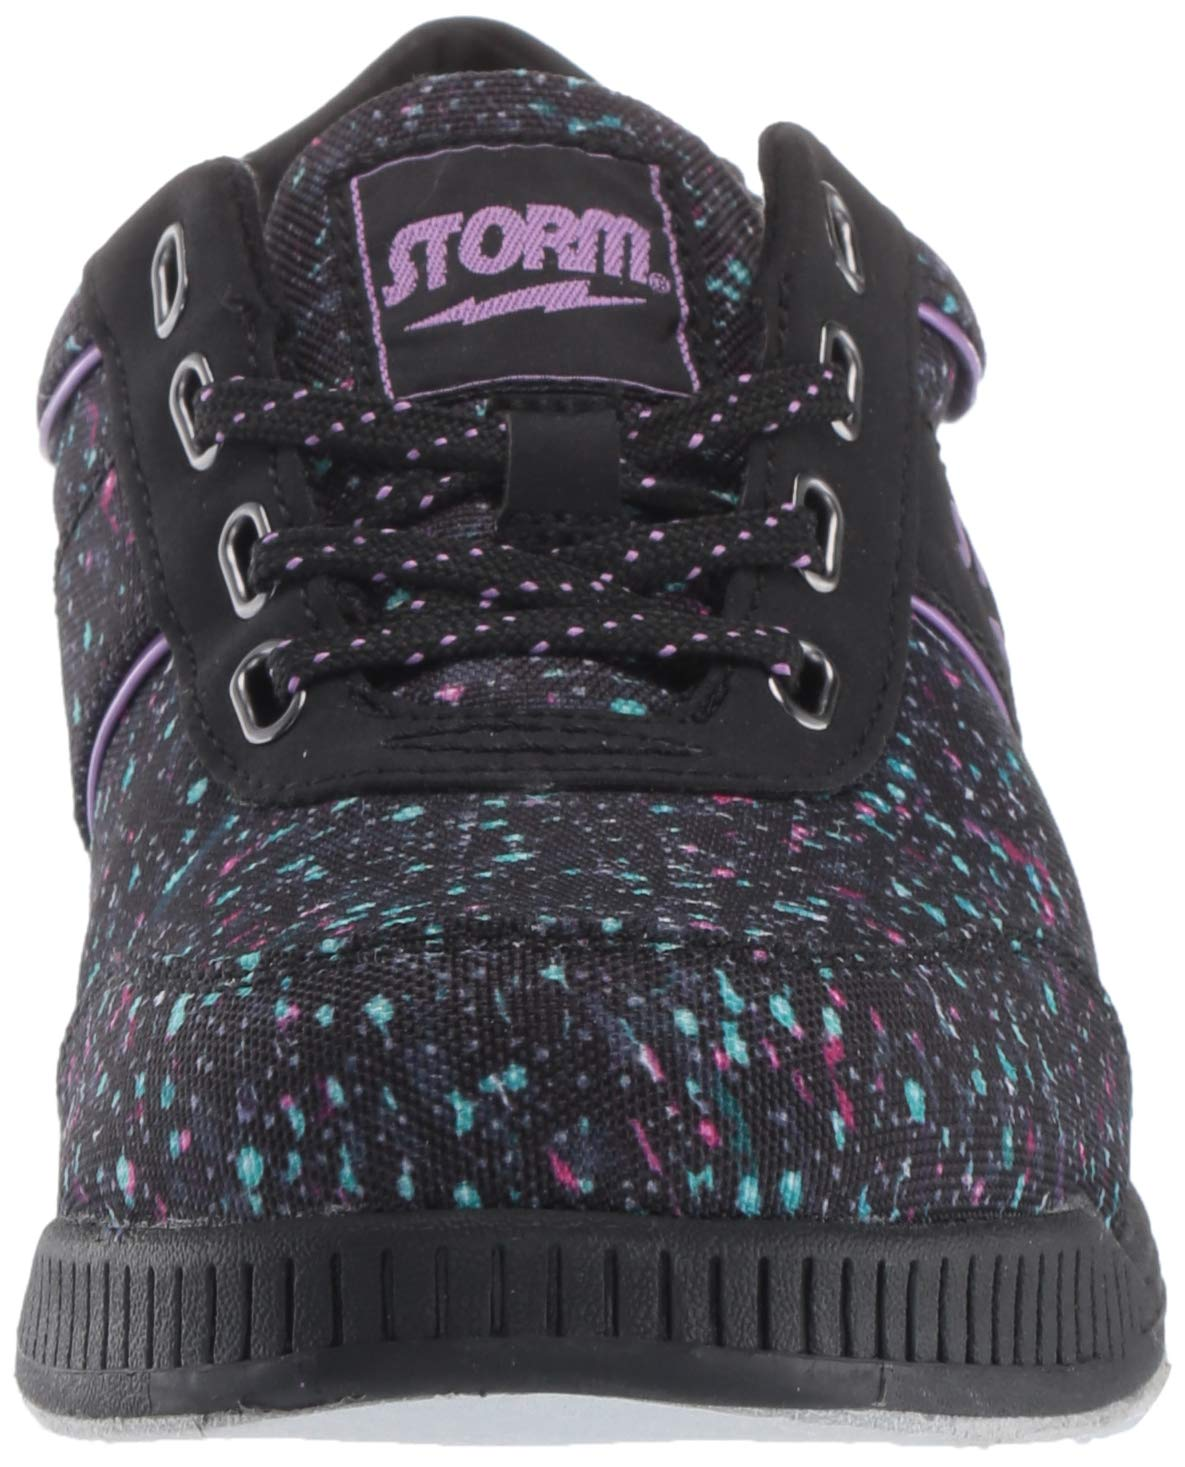 Storm SPSW0000399 060 Bowling Shoes, Multi Color, 6.0 by Storm (Image #4)